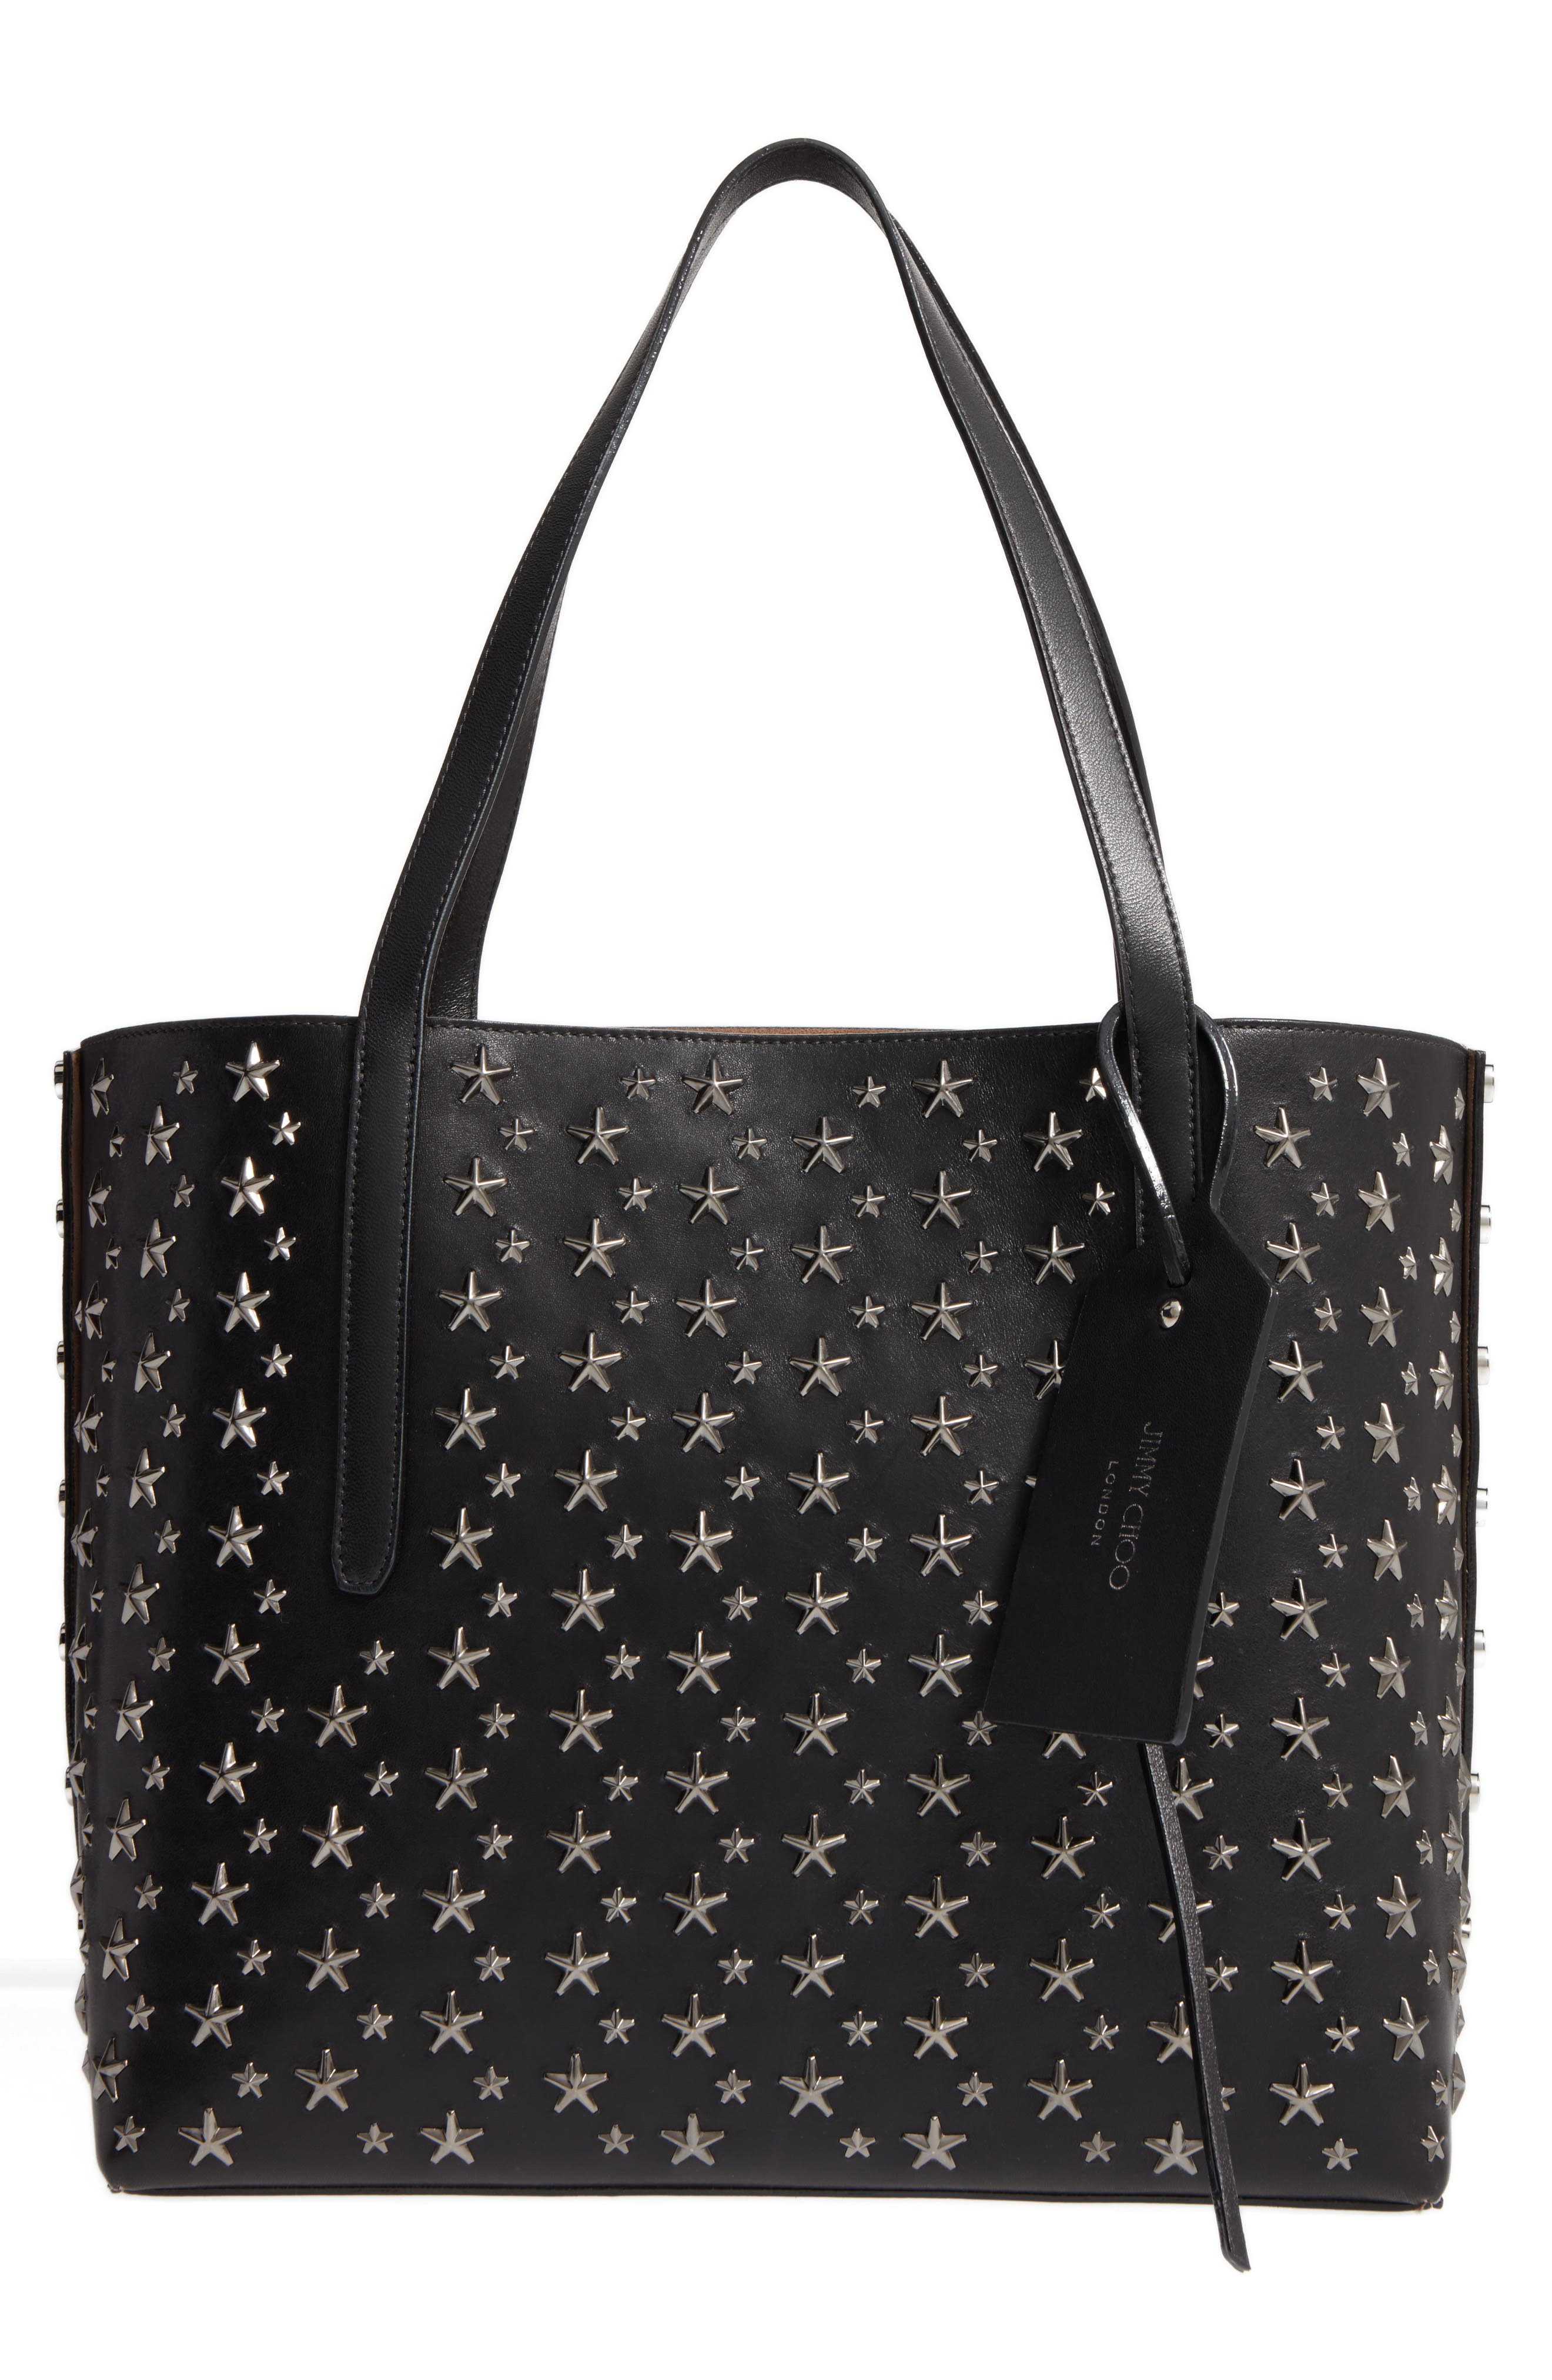 Main Image - Jimmy Choo Twist East West Leather Tote